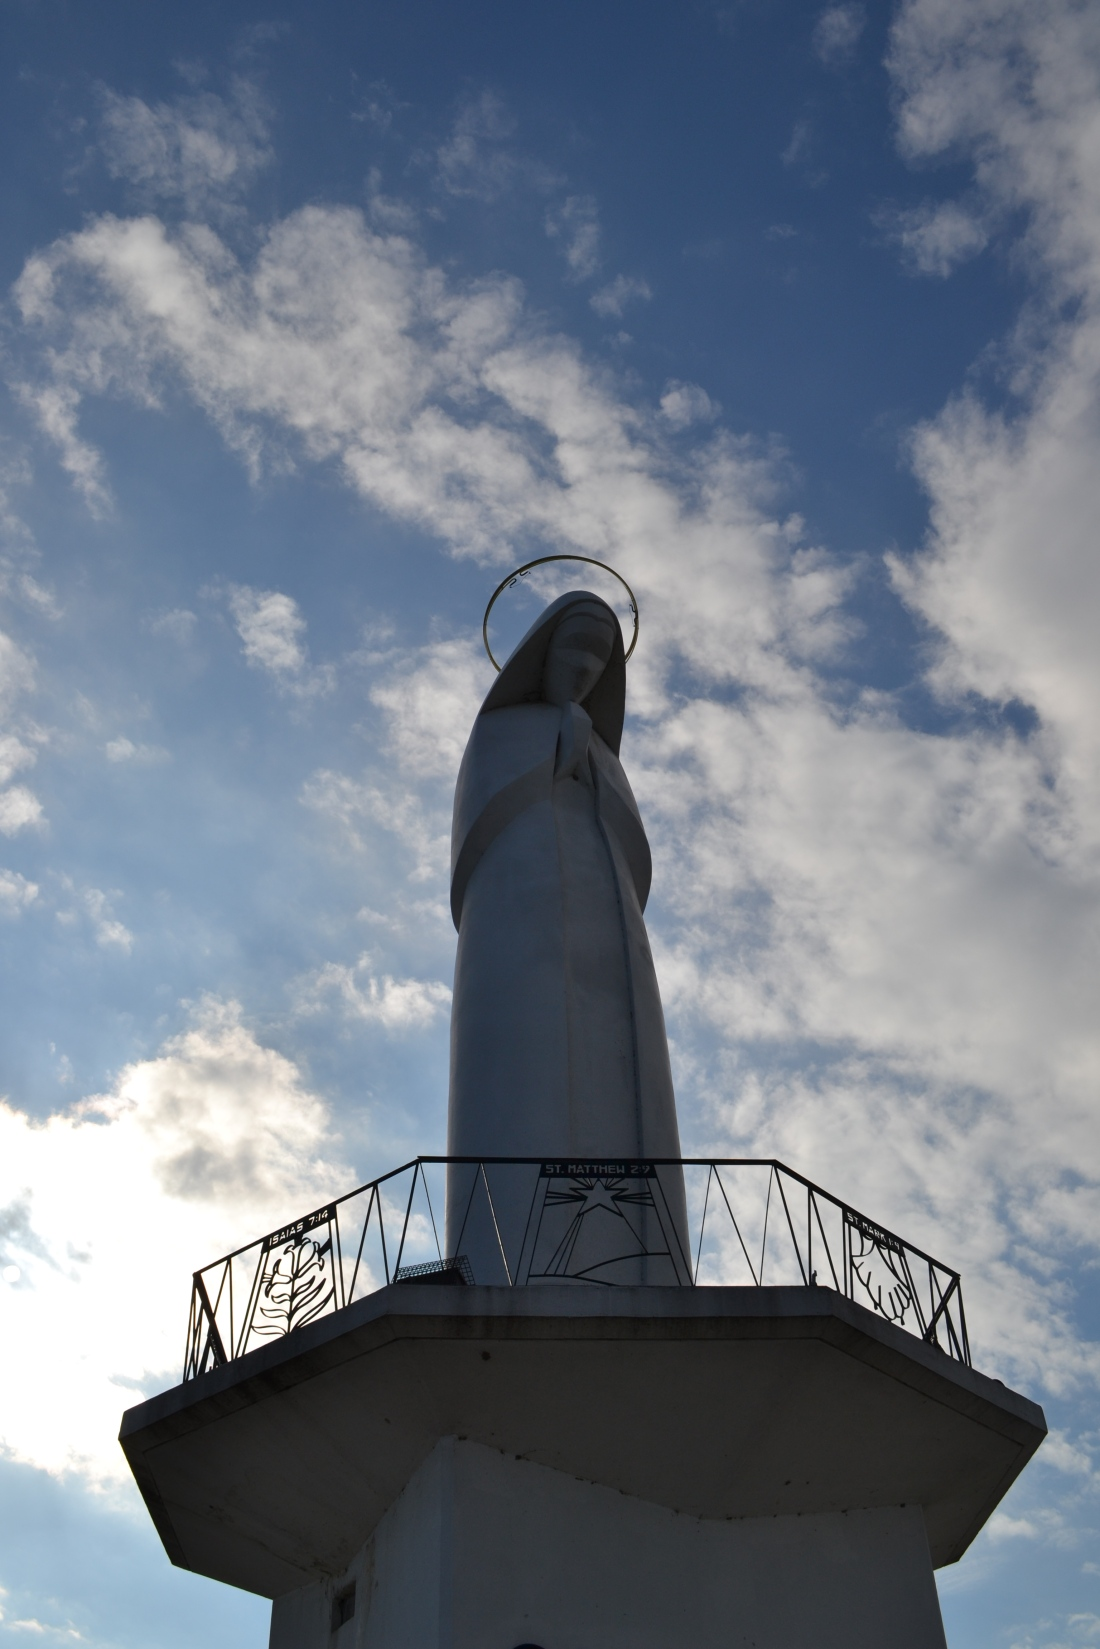 A statue of the Virgin Mary, her head bowed and hands reposed in prayer. The statue faces the riverfront in the township of Portage de Sioux, MO.